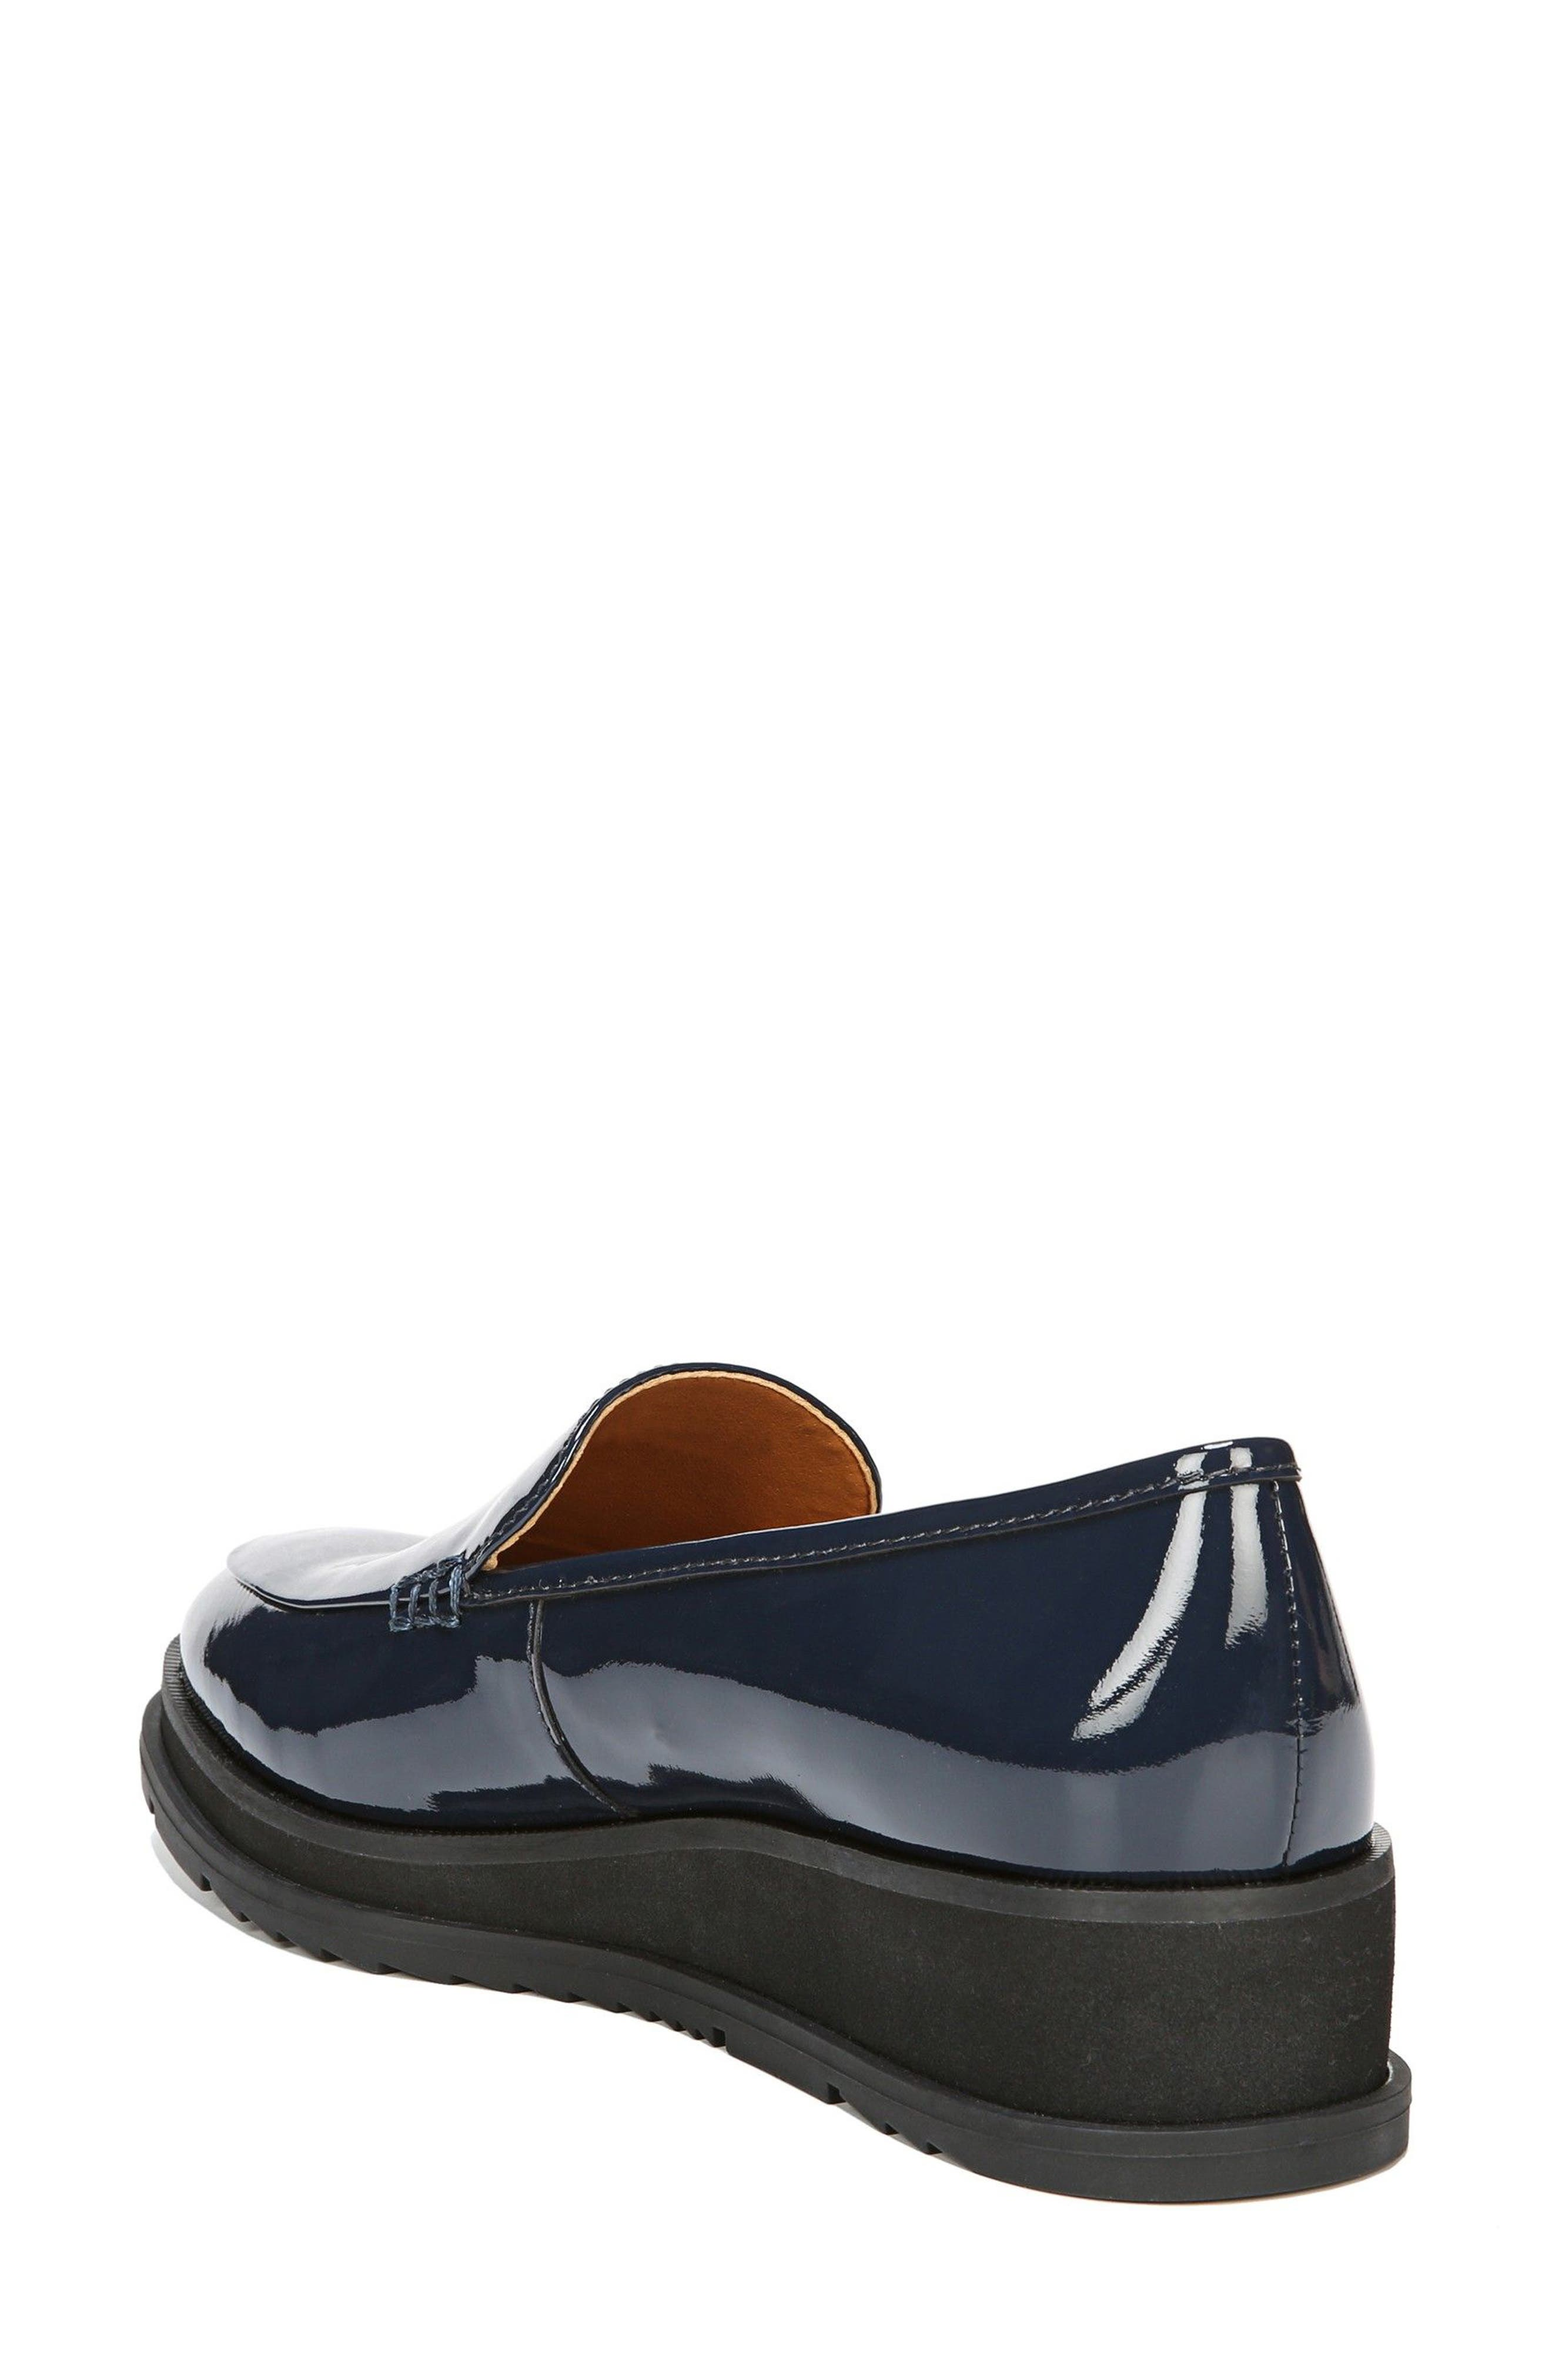 Ayers Loafer Flat,                             Alternate thumbnail 19, color,